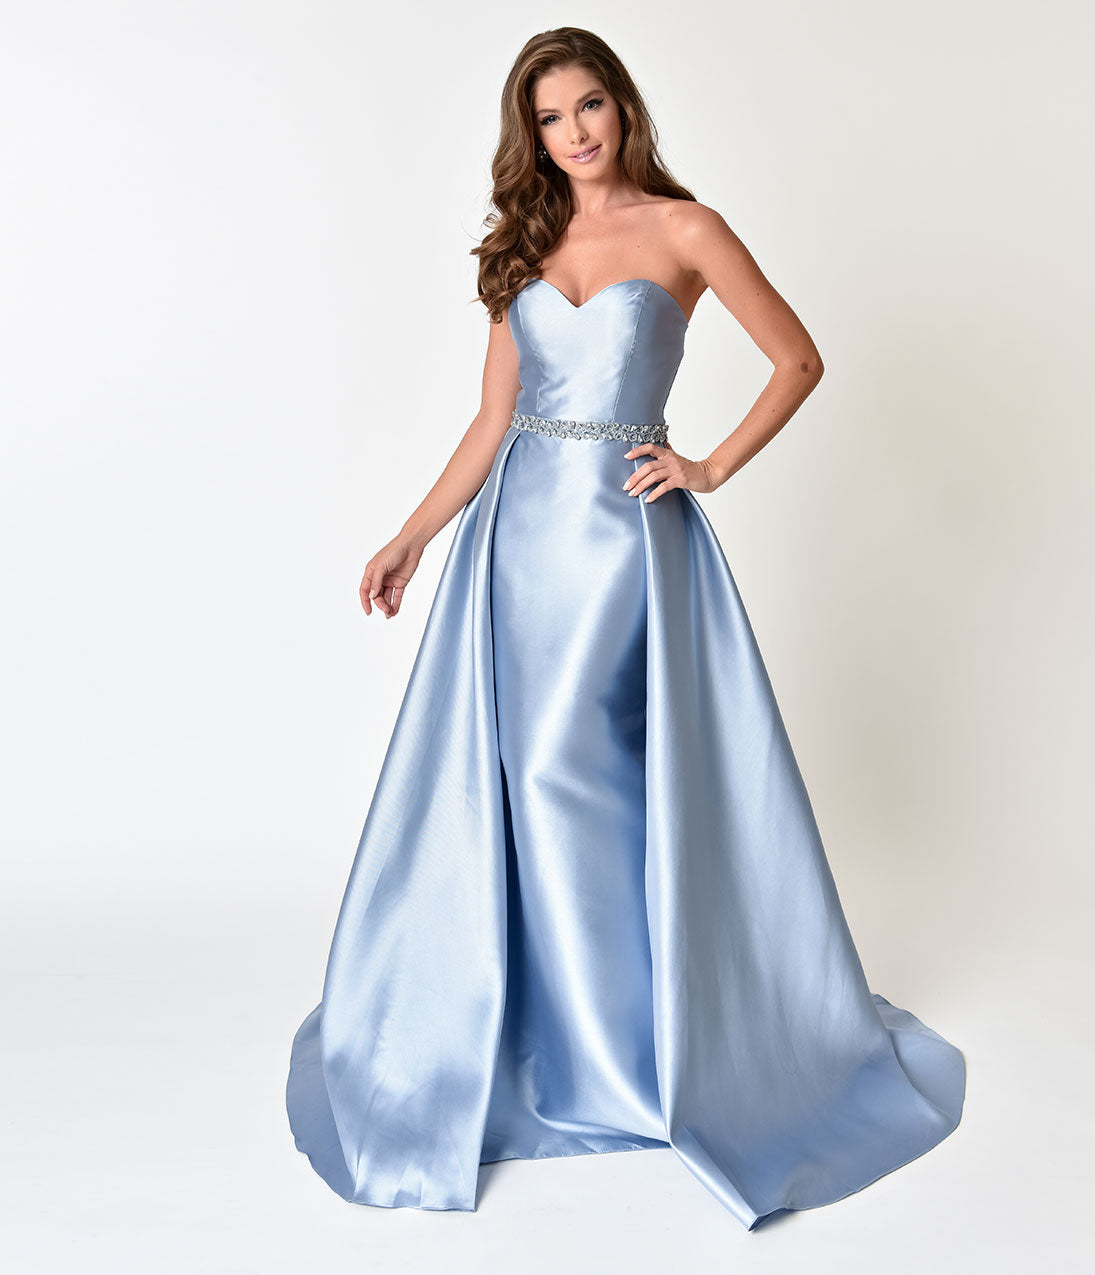 1950s Prom Dresses & Party Dresses Perry Blue Strapless Sweetheart Neckline Satin Prom Gown $190.00 AT vintagedancer.com